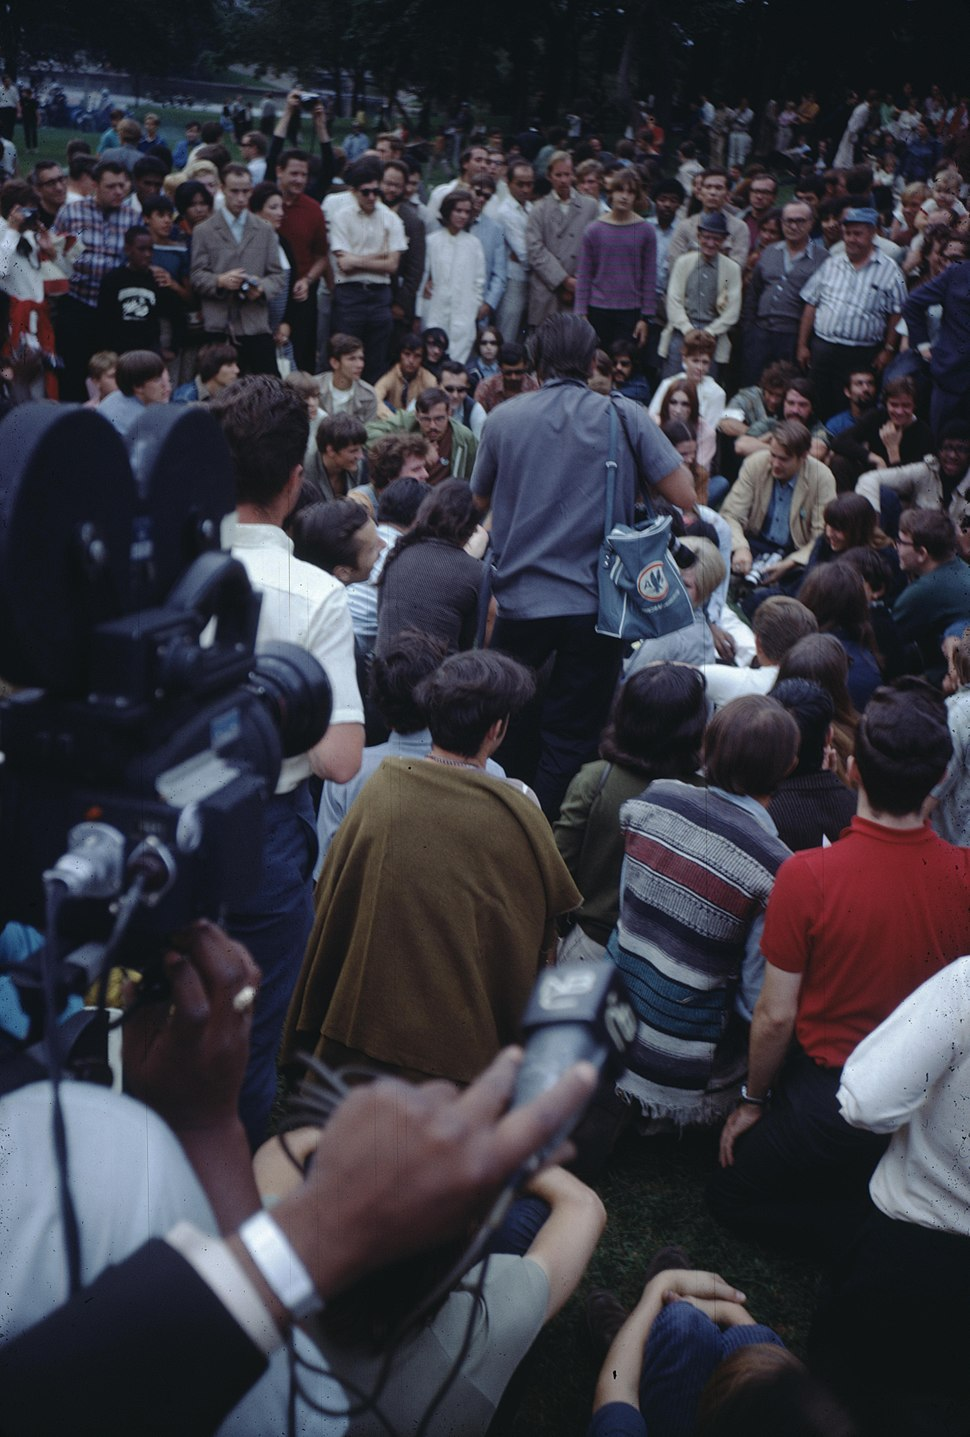 Photography by Victor Albert Grigas (1919-2017) 00234 Lincoln Park Chicago 1968 NBC news (37557030571)